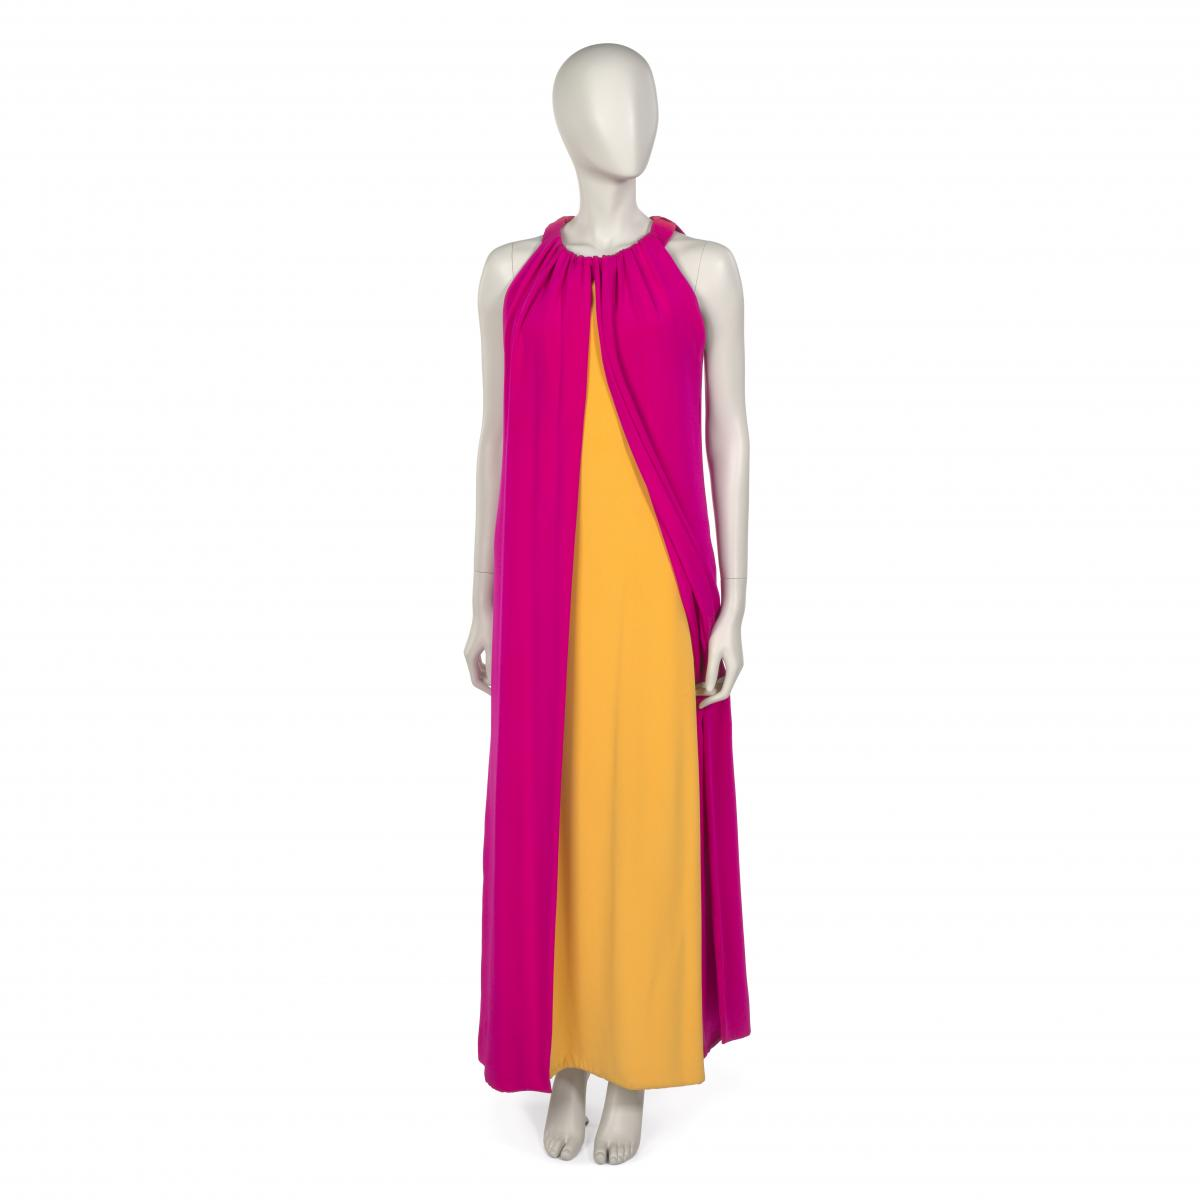 Yves Saint Laurent. [Evening gown in silk crepe], 1967. Museum of the City of New York, 77.98.23.